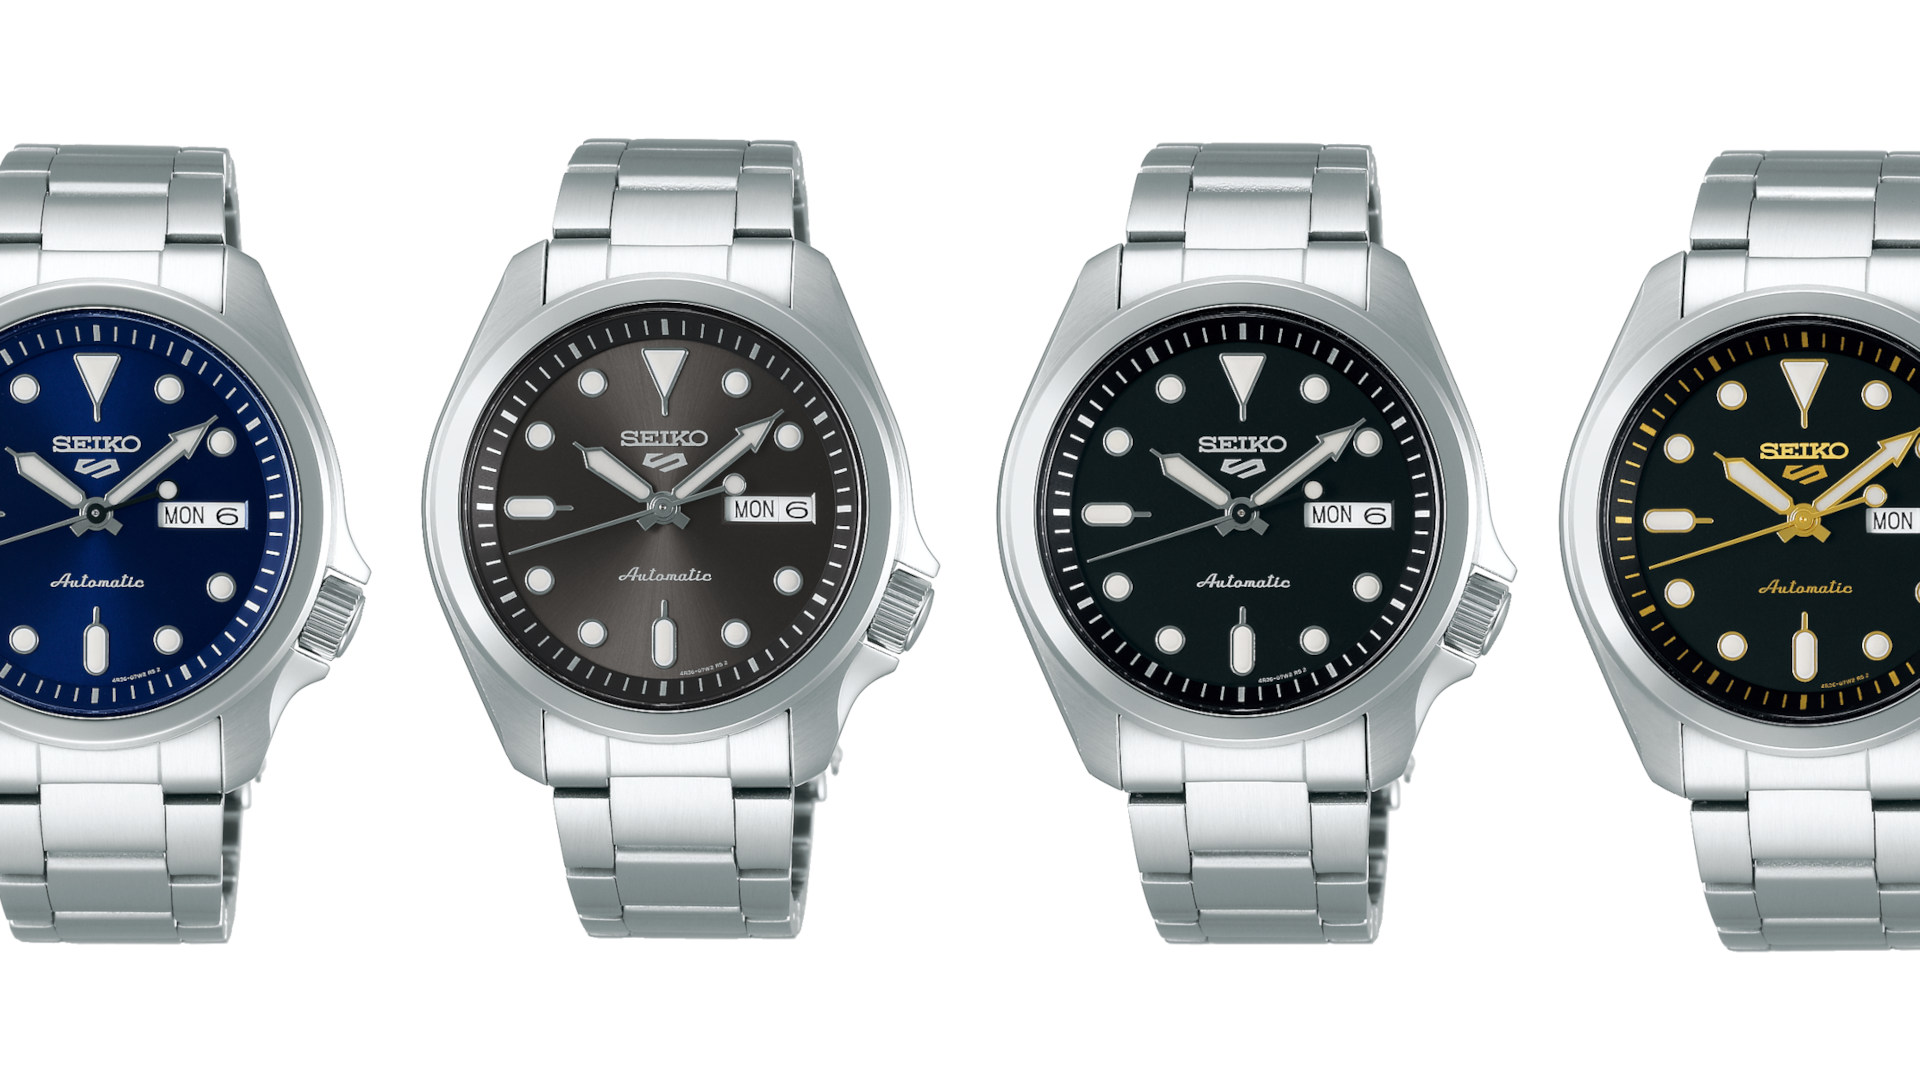 The new Seiko 5 Sports loses the bezel and downsize to a 40mm diameter